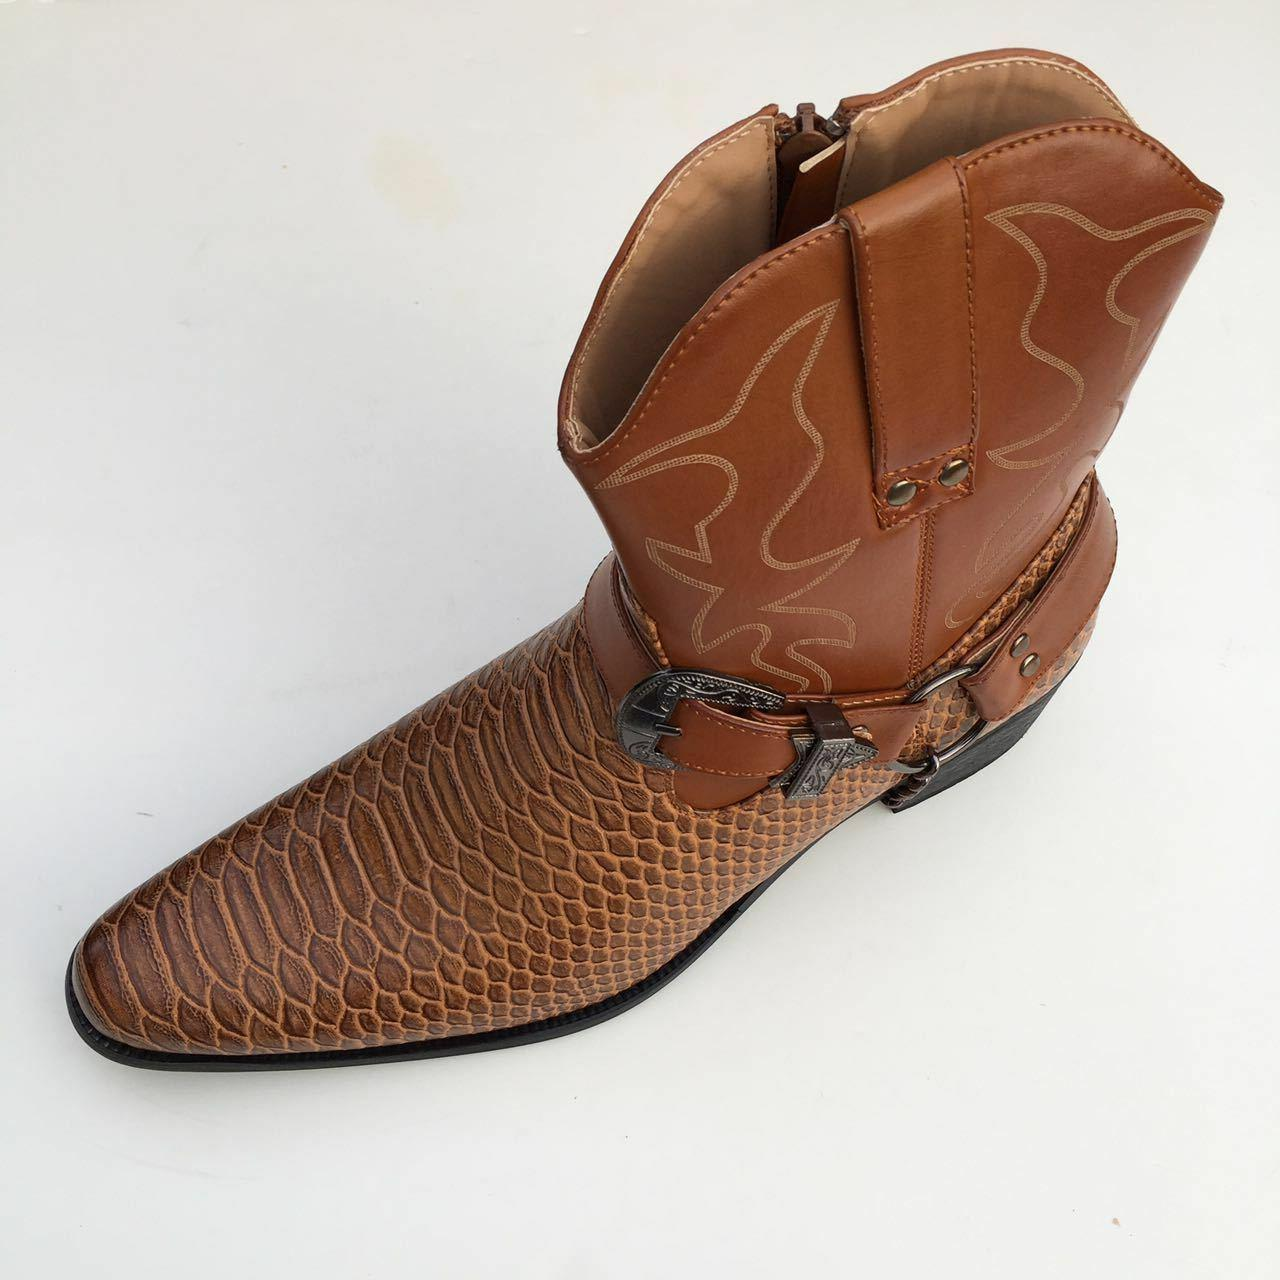 Men's Boots Western Snake Skin Buckle Harness Shoes,